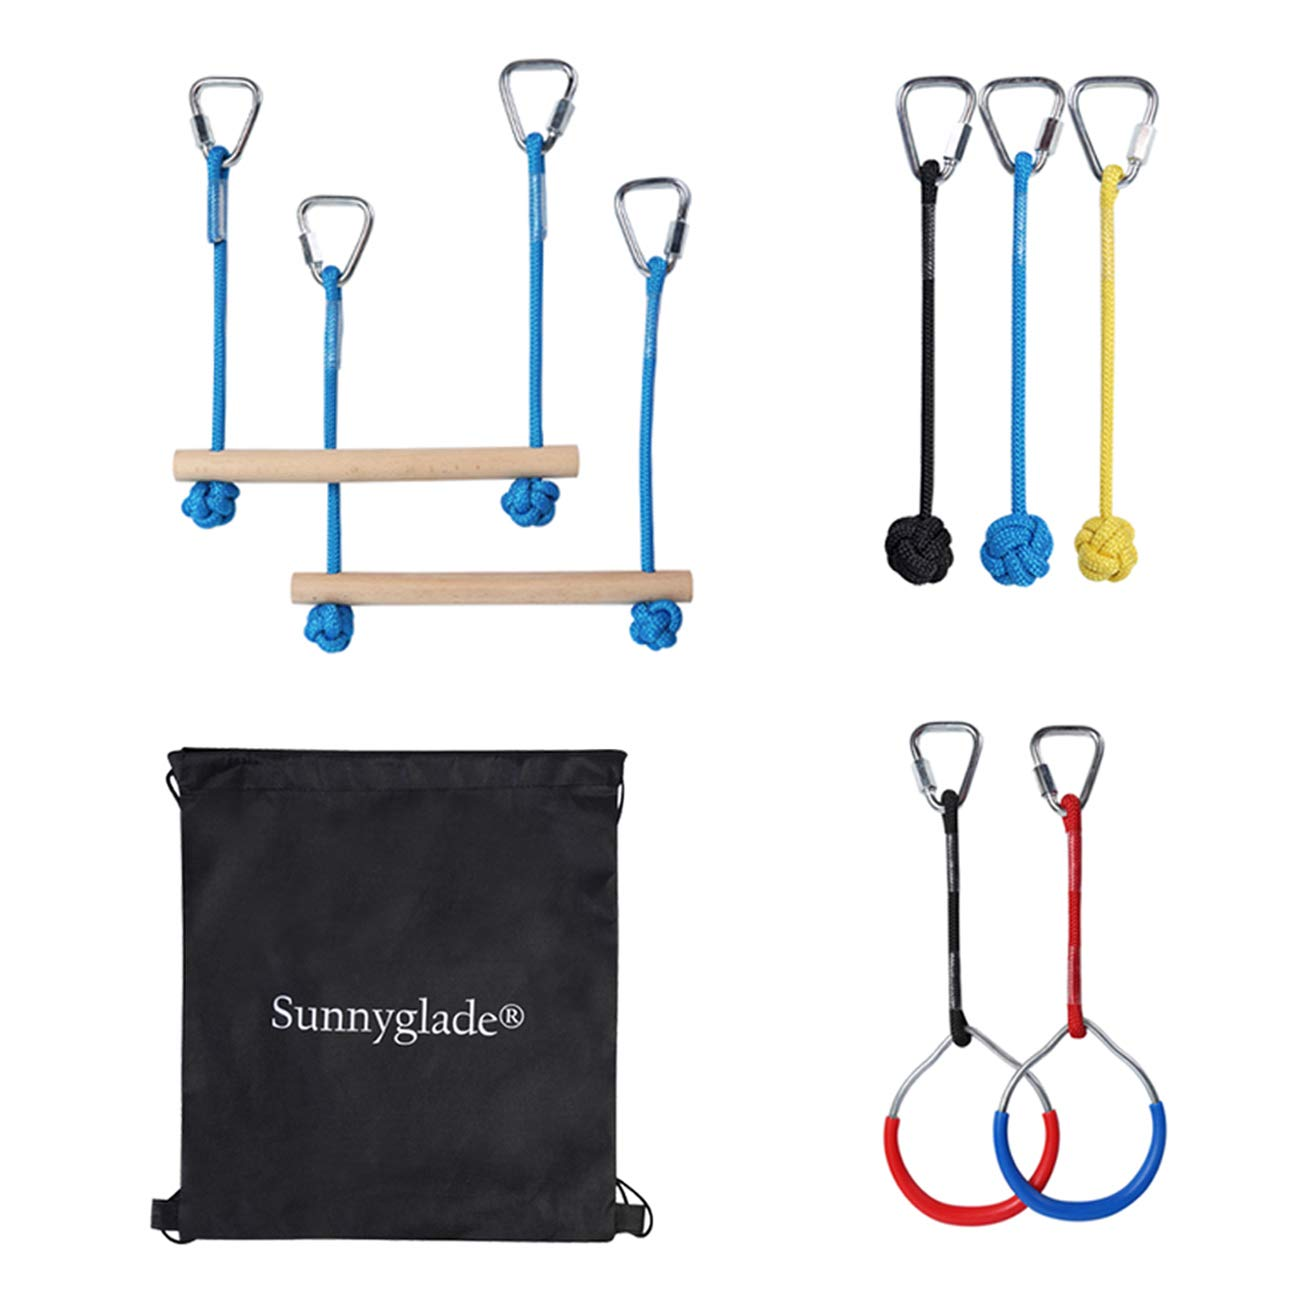 Sunnyglade Backyard Ninja Line Accessories Hanging Obstacle Course/Slackers Ninja Line Accessories for Kids - 2 Bars, 3 Fists & 2Rings by Sunnyglade